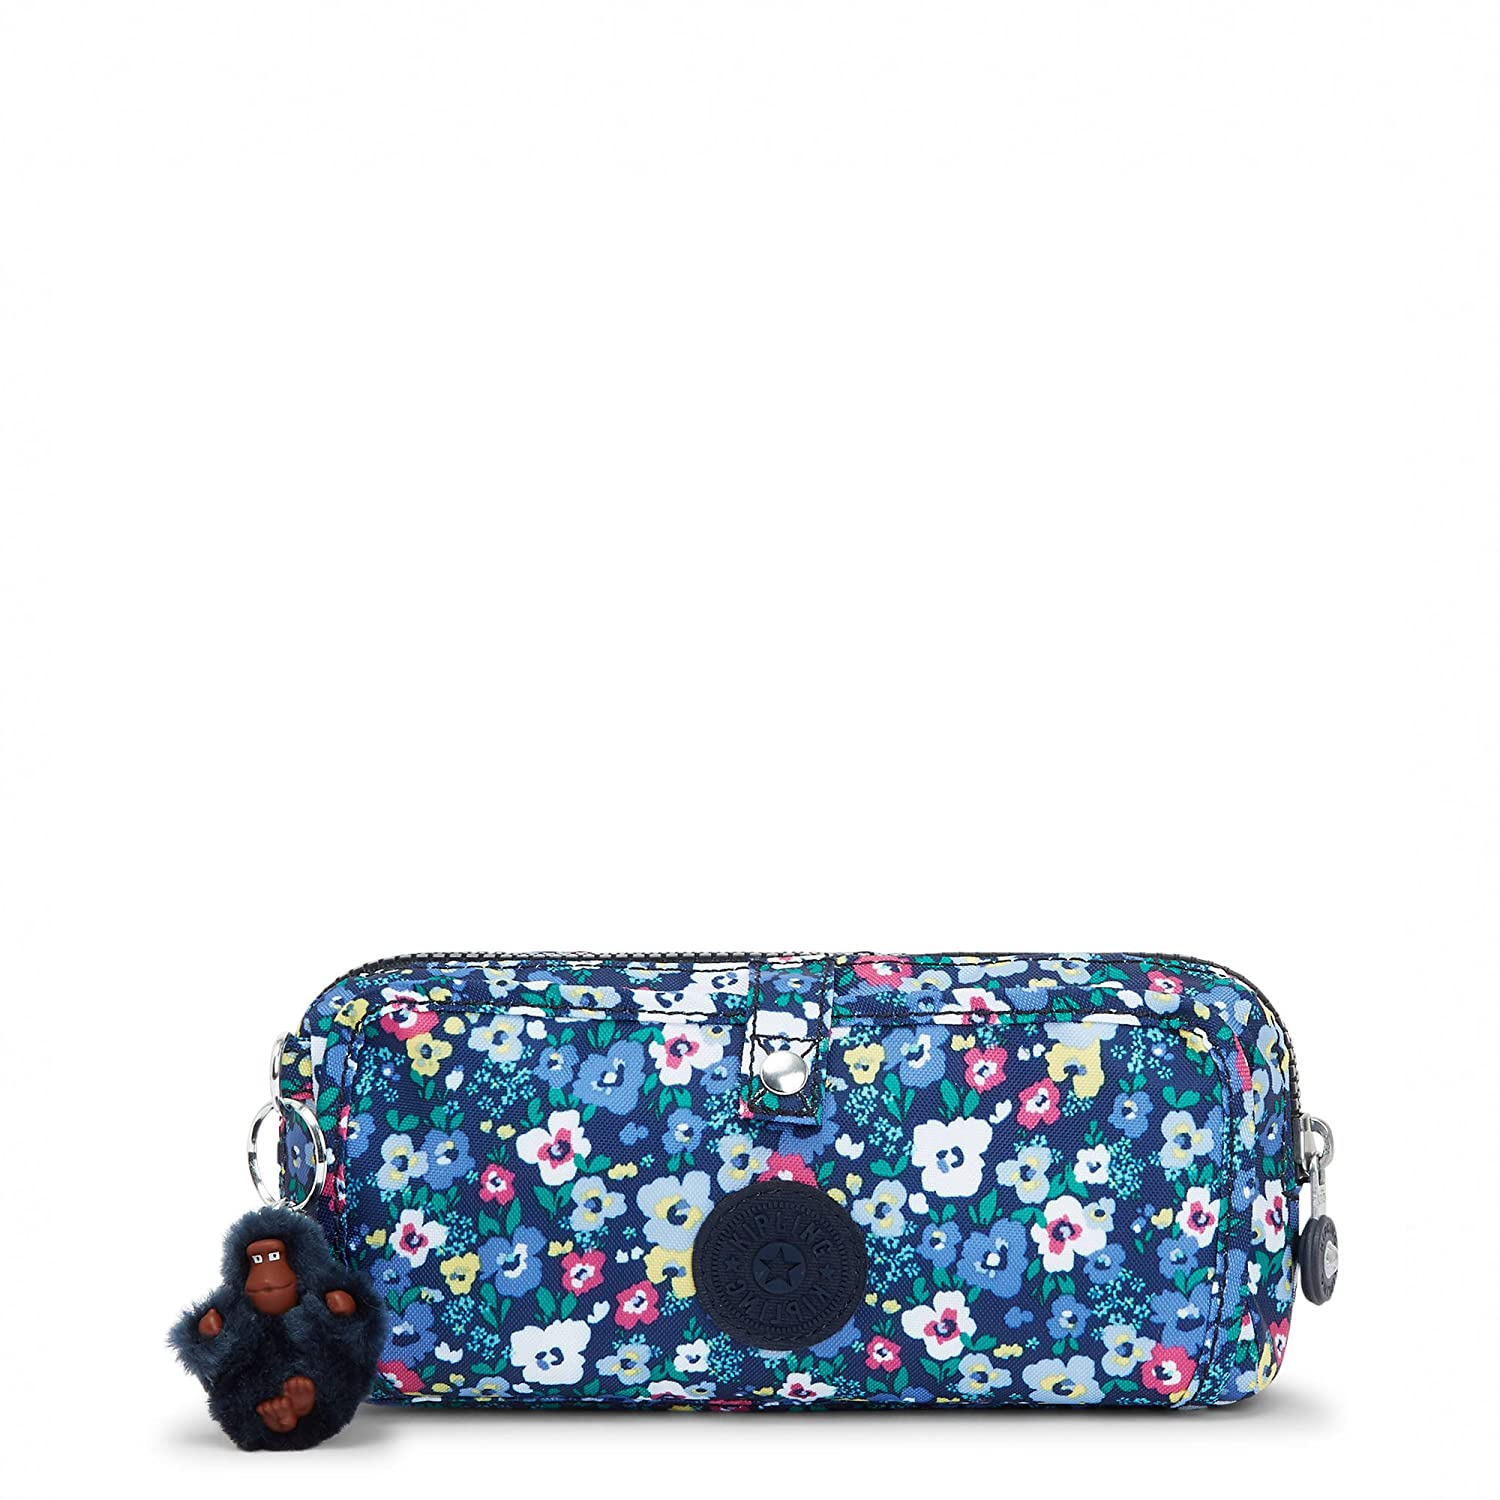 Kipling Wolfe Printed Pencil Pouch One Size Bustling Petals